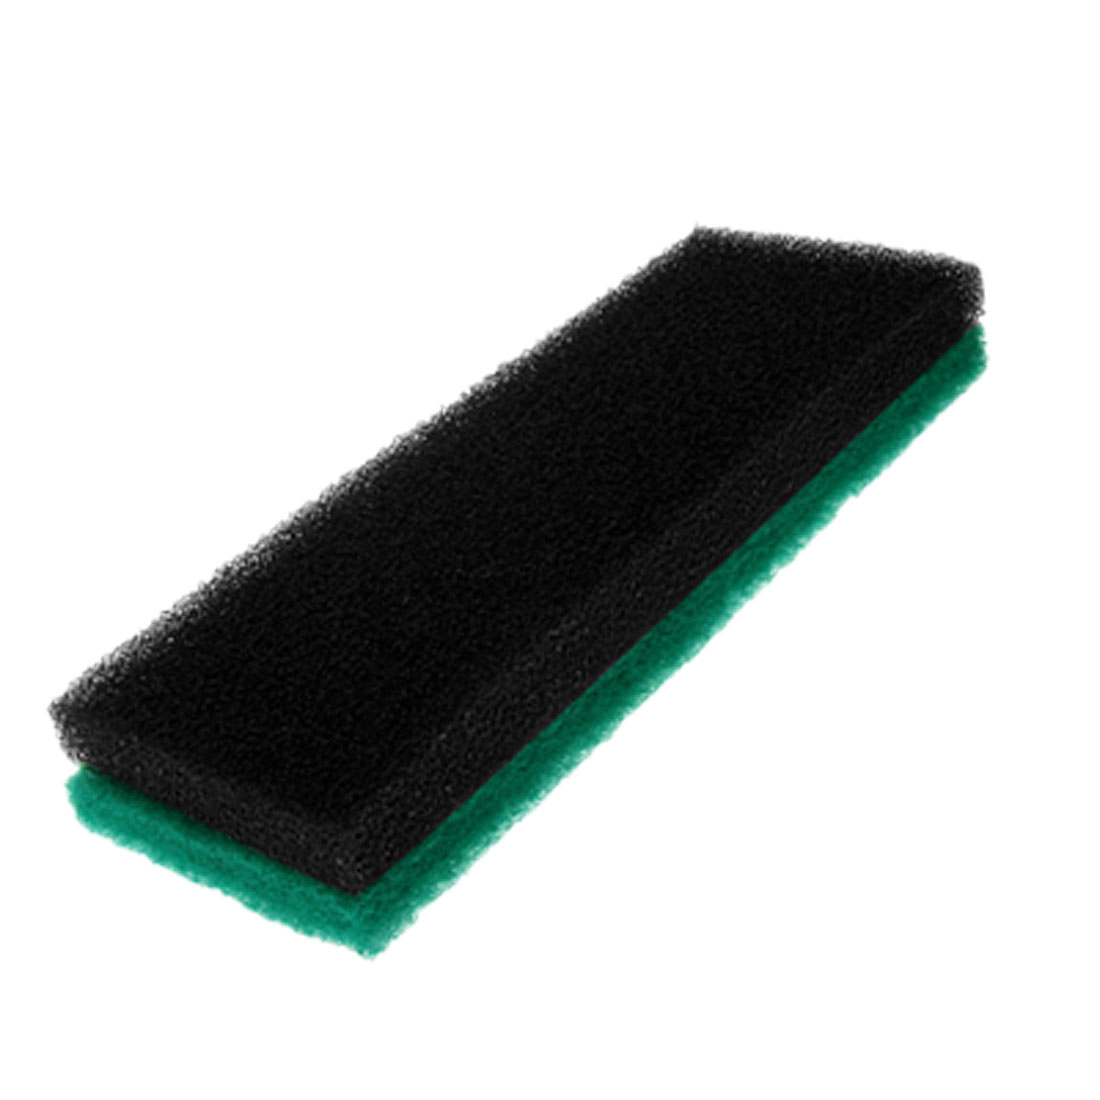 2 Pcs Black Green Retangle Aquarium Sponge Fish Tank Filter